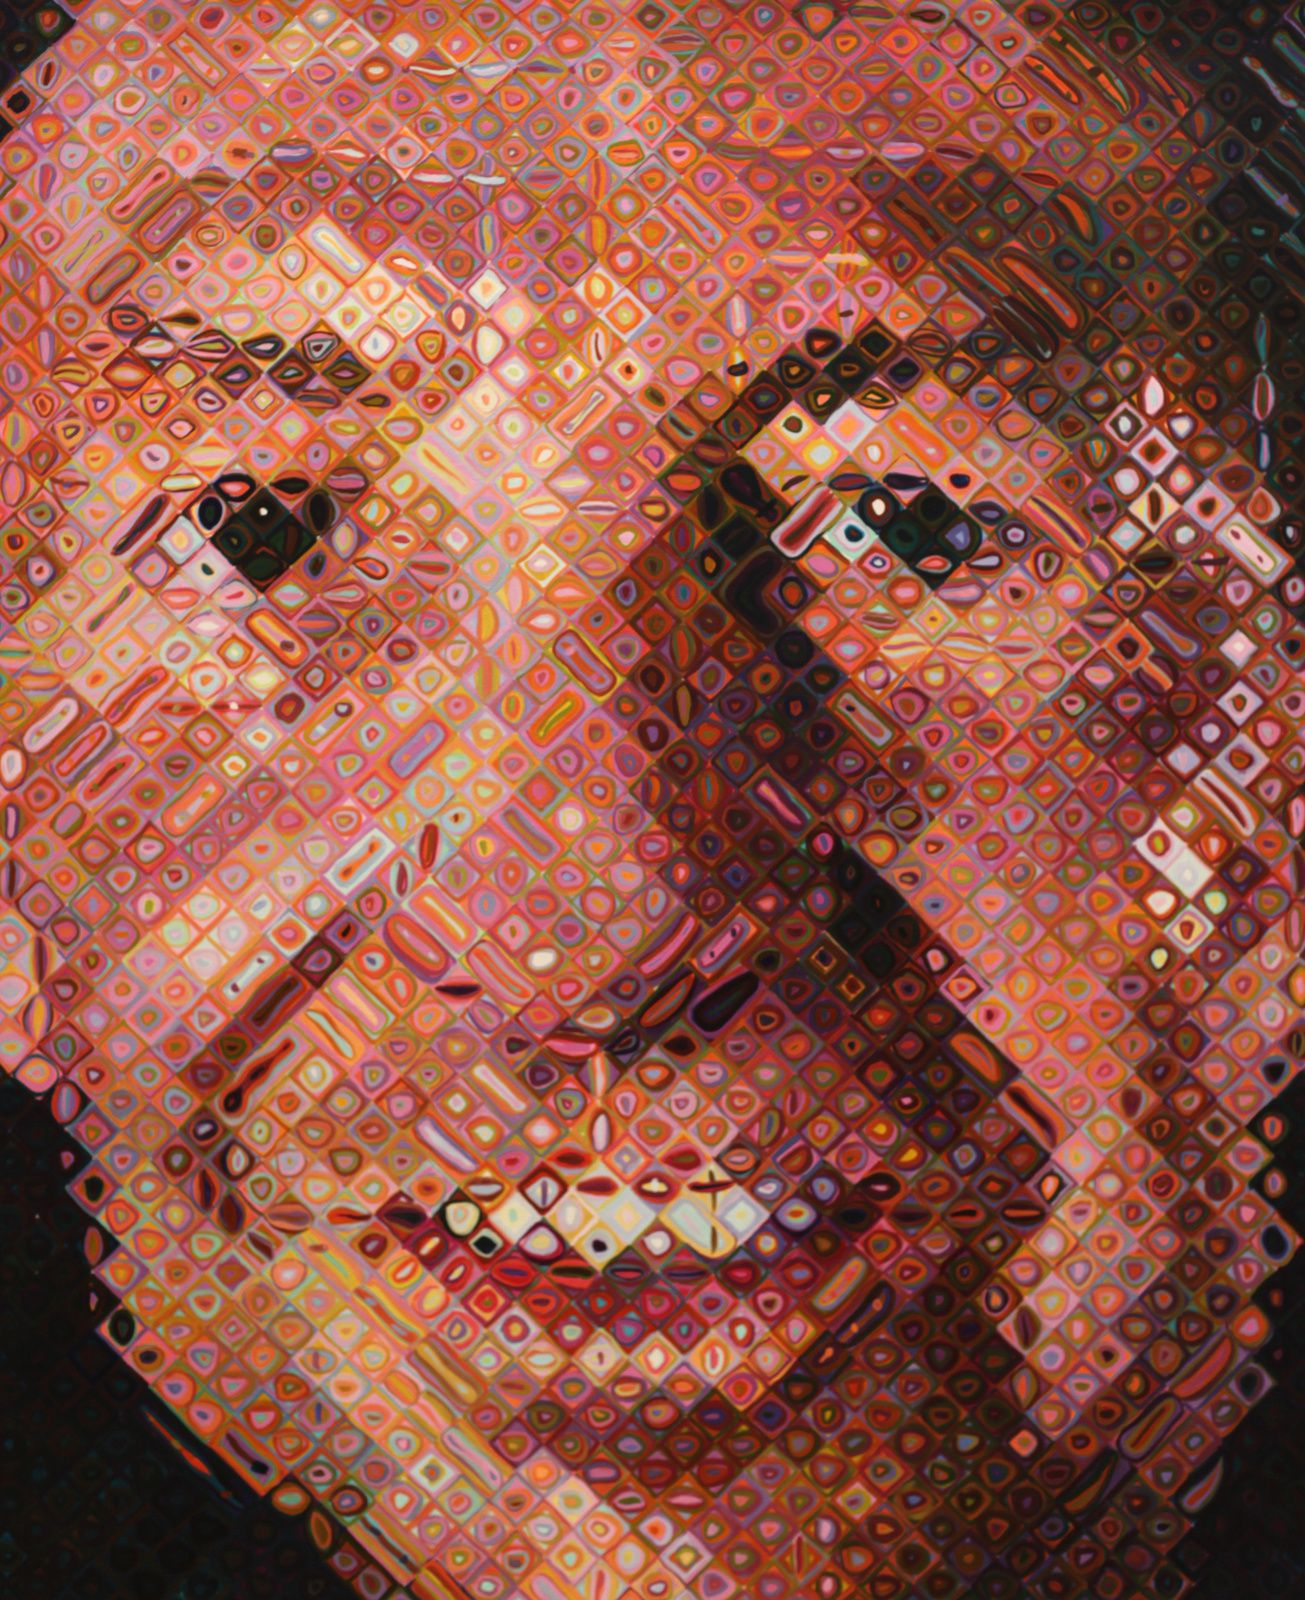 """Robert"", 1996-1997 de Chuck Close. Collection at the San Francisco Museum of Modern Art © Photo Éric Simon"